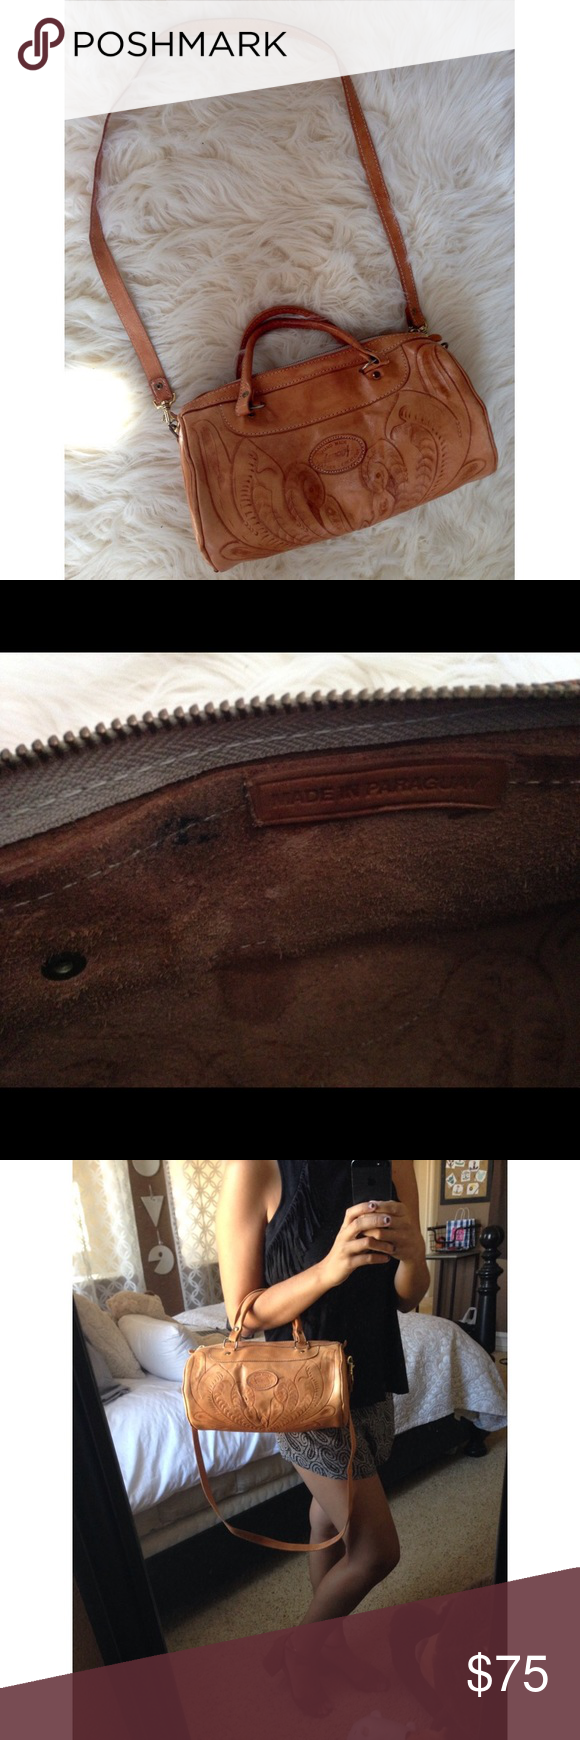 Sergio's Leather Creations Purse Sergio's Handmade Genuine Leather Purse. Made in Paraguay. Small mark on inside as pictures, otherwise good vintage condition! Has long removable shoulder strap and small handles. Cute western feel Bags